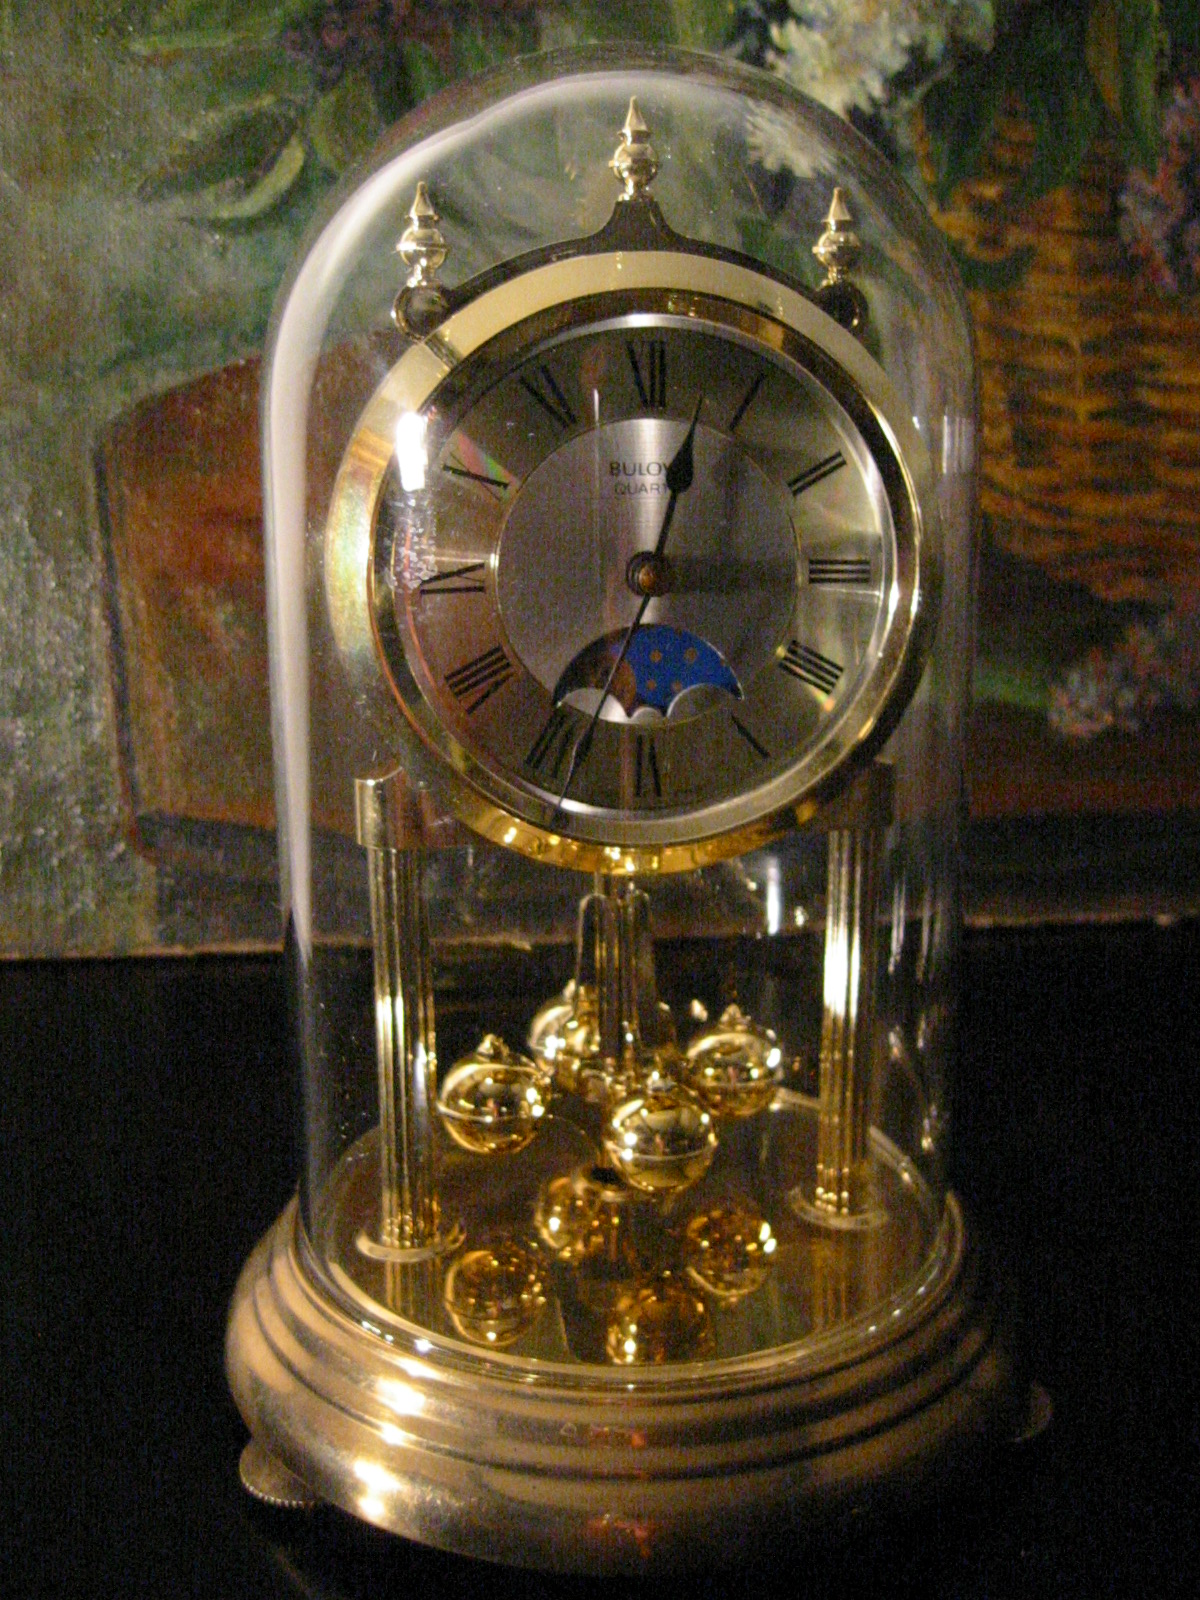 bulova moon face anniversary clock from w germany for sale antiquescom classifieds - Anniversary Clock